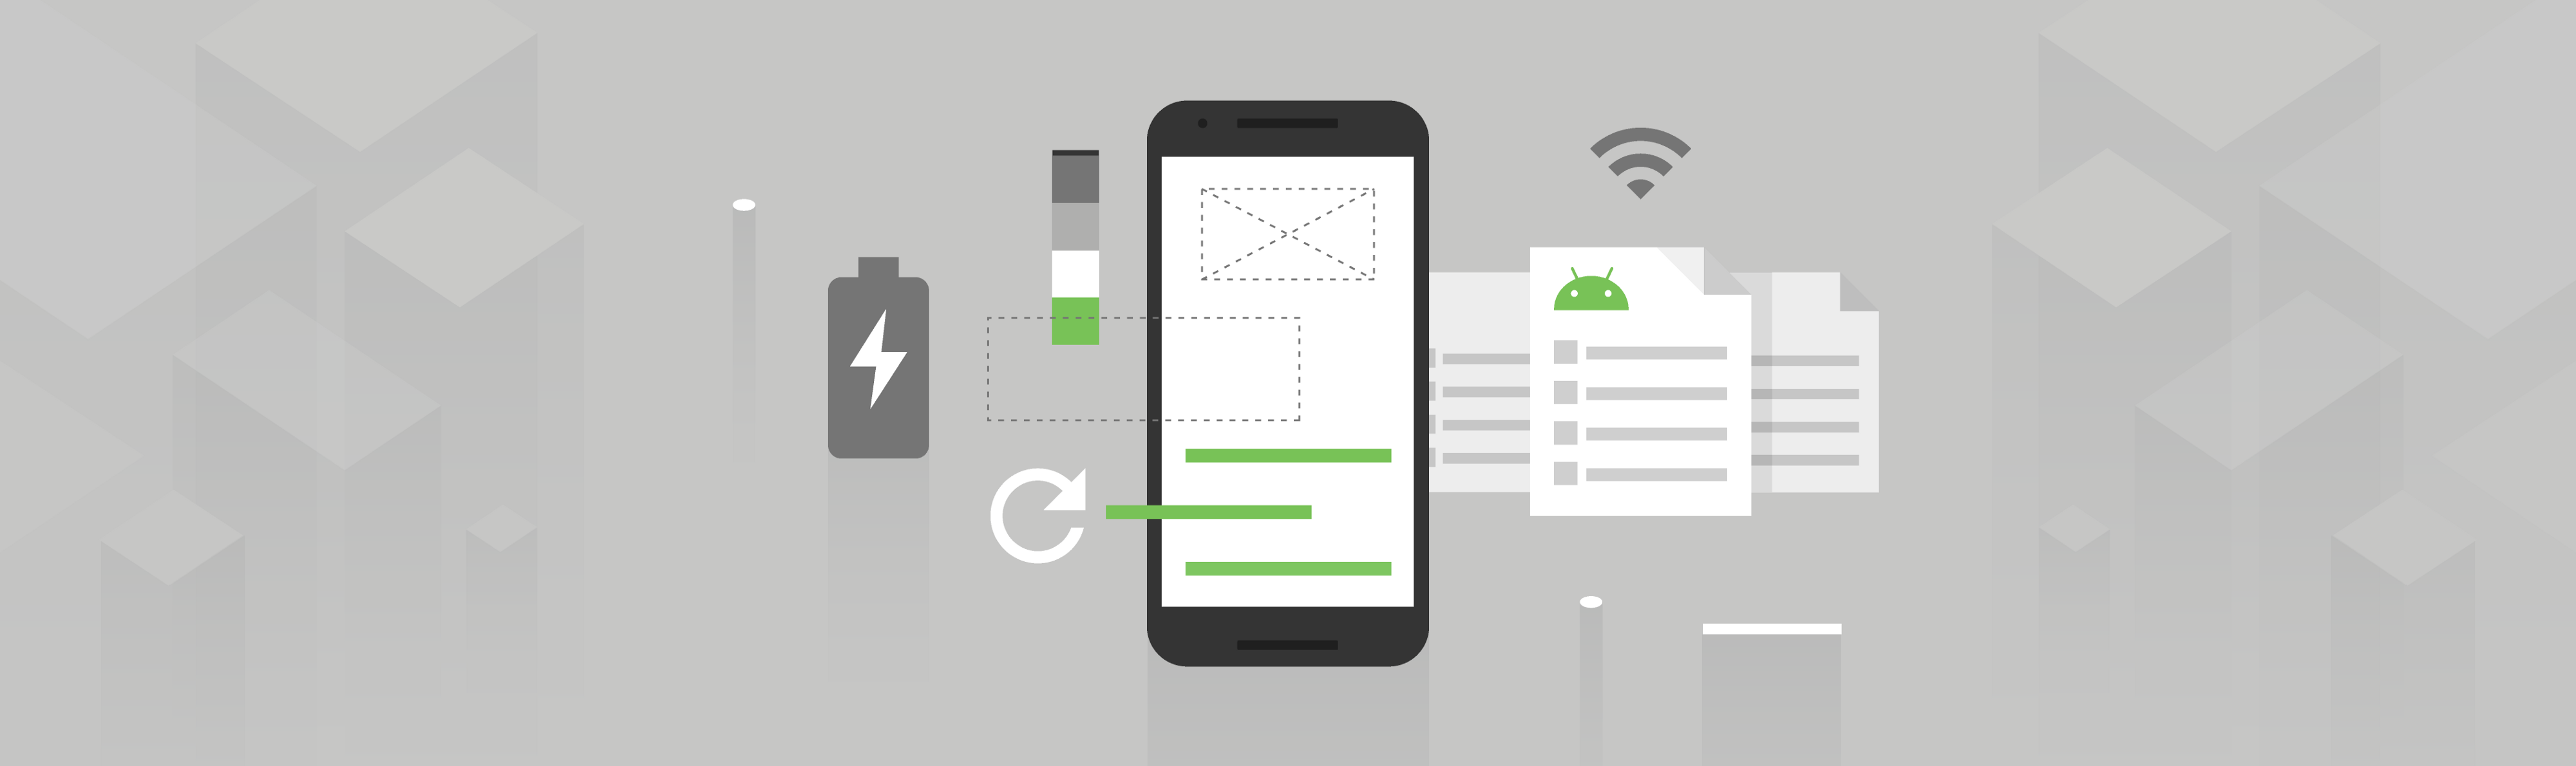 Introducing WorkManager - Android Developers - Medium